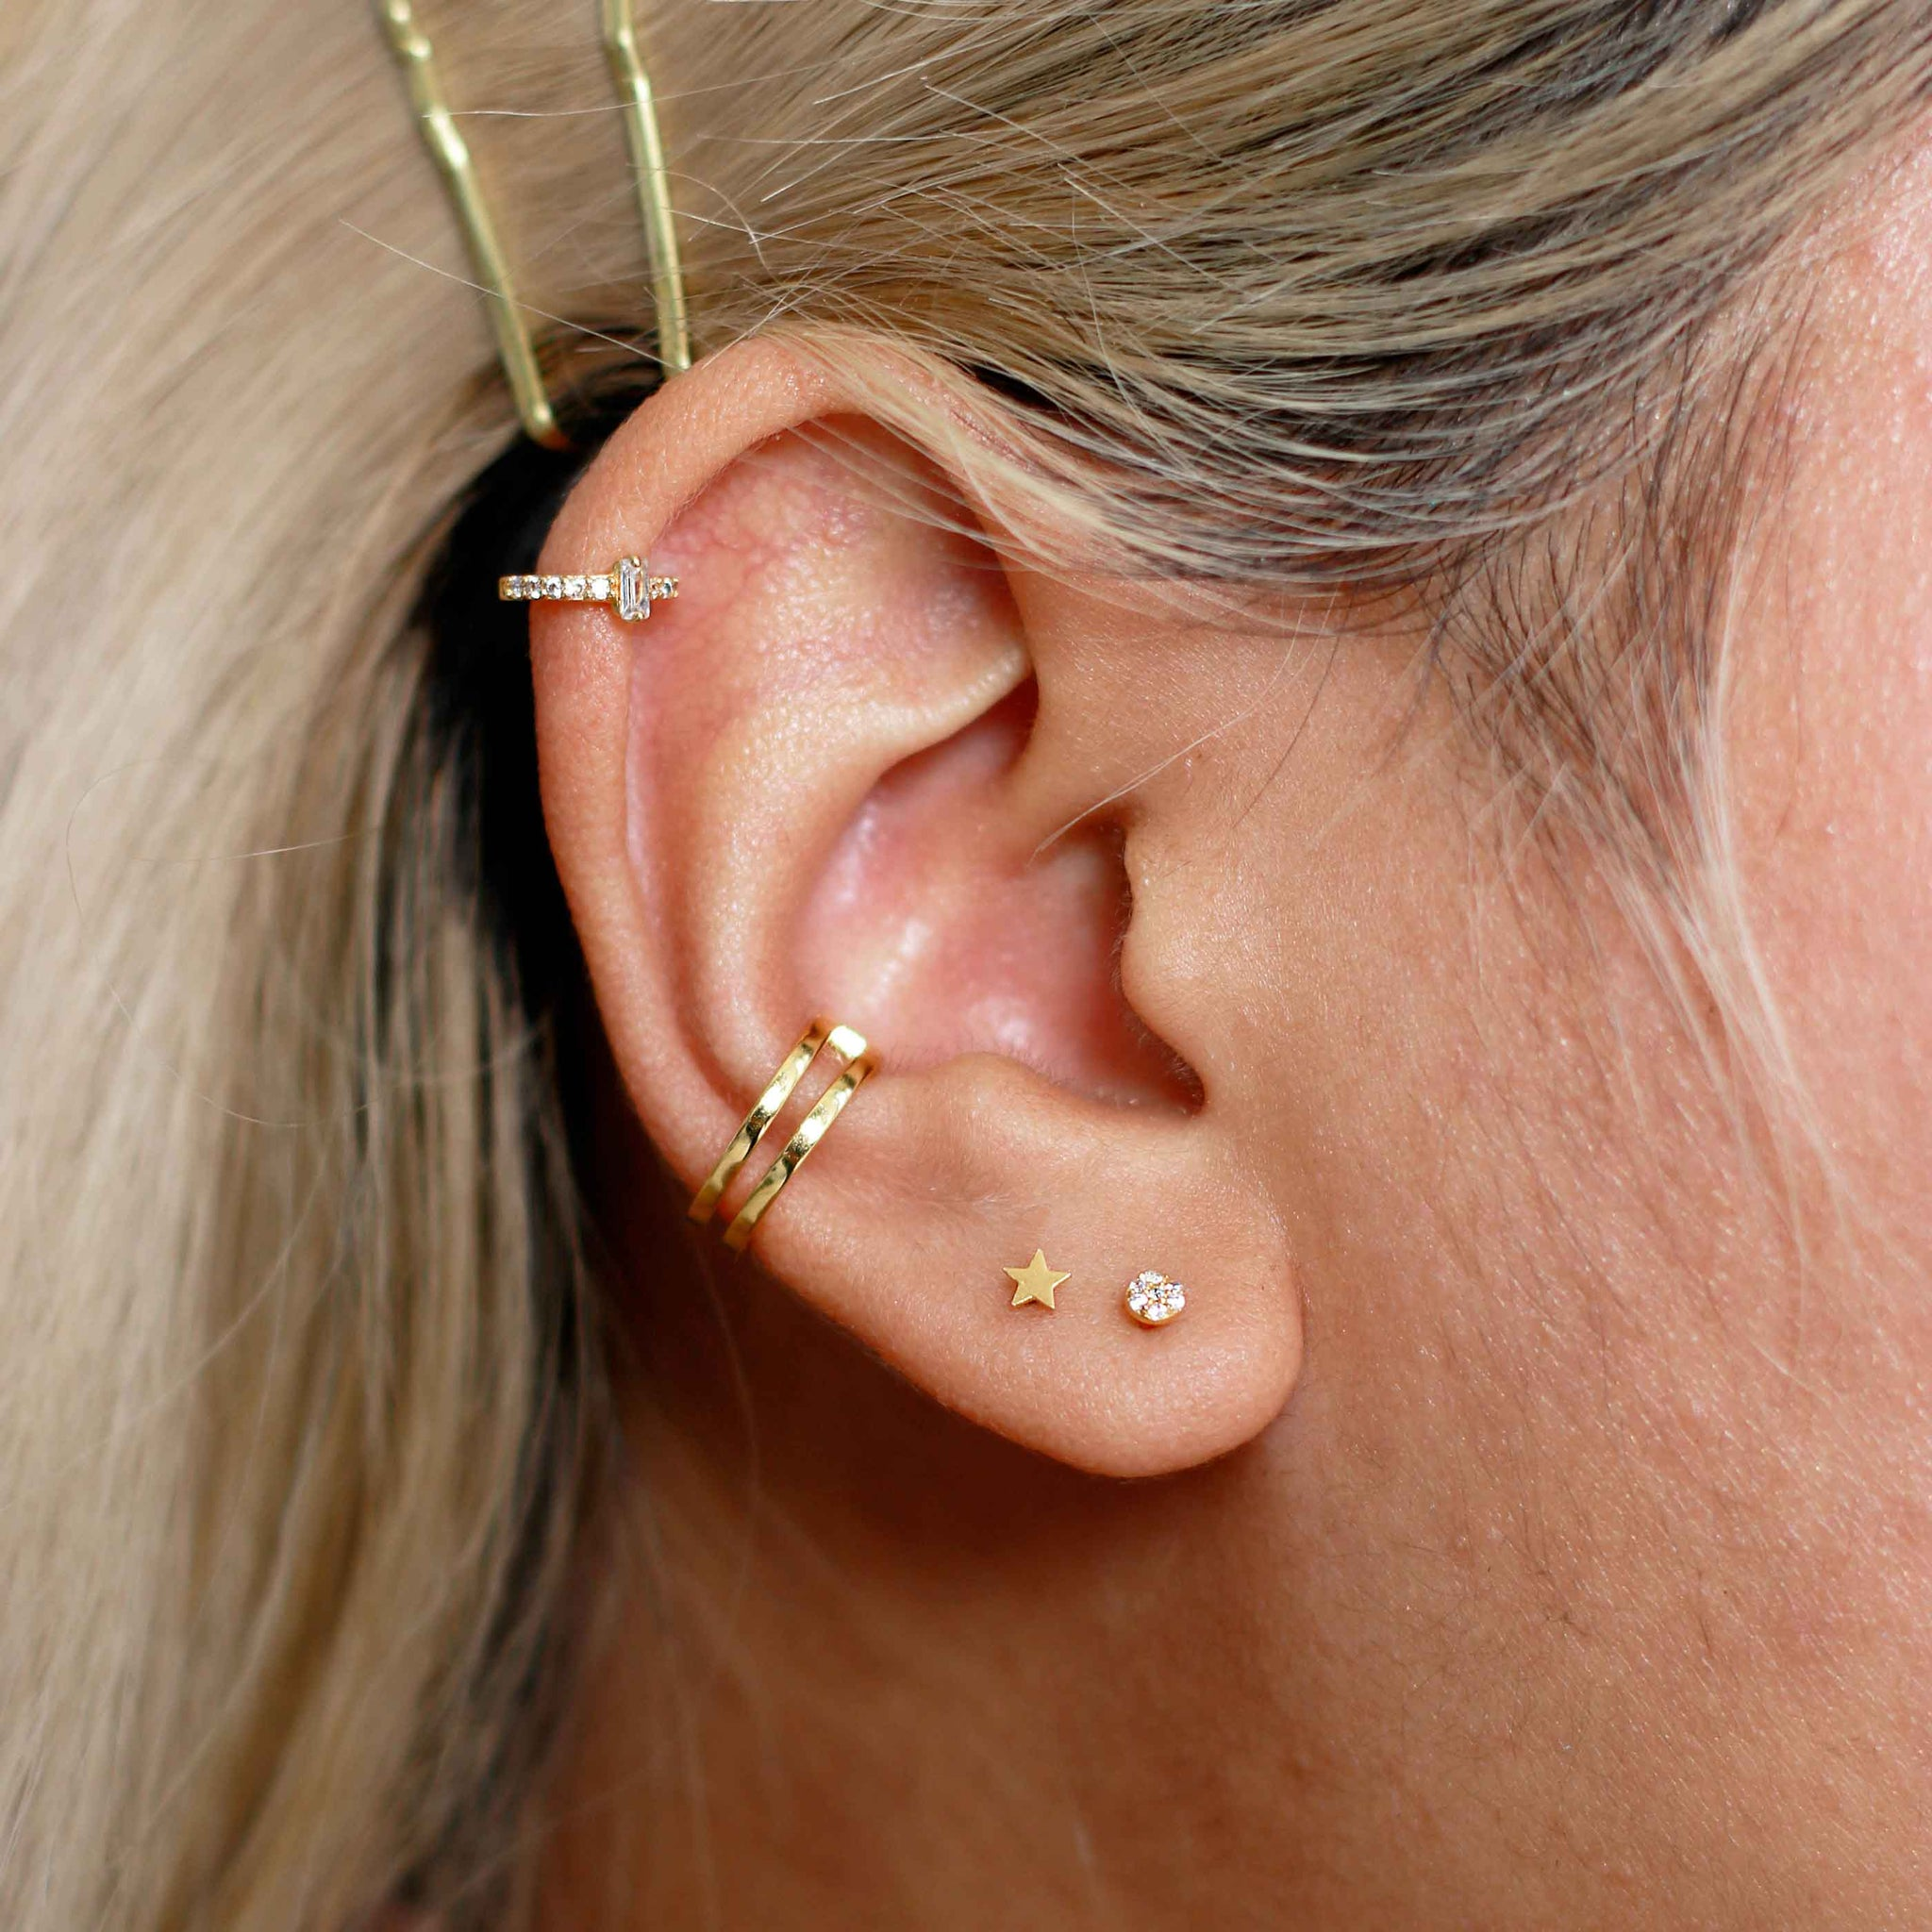 Simple Star Barbell in Gold on Ear Stack